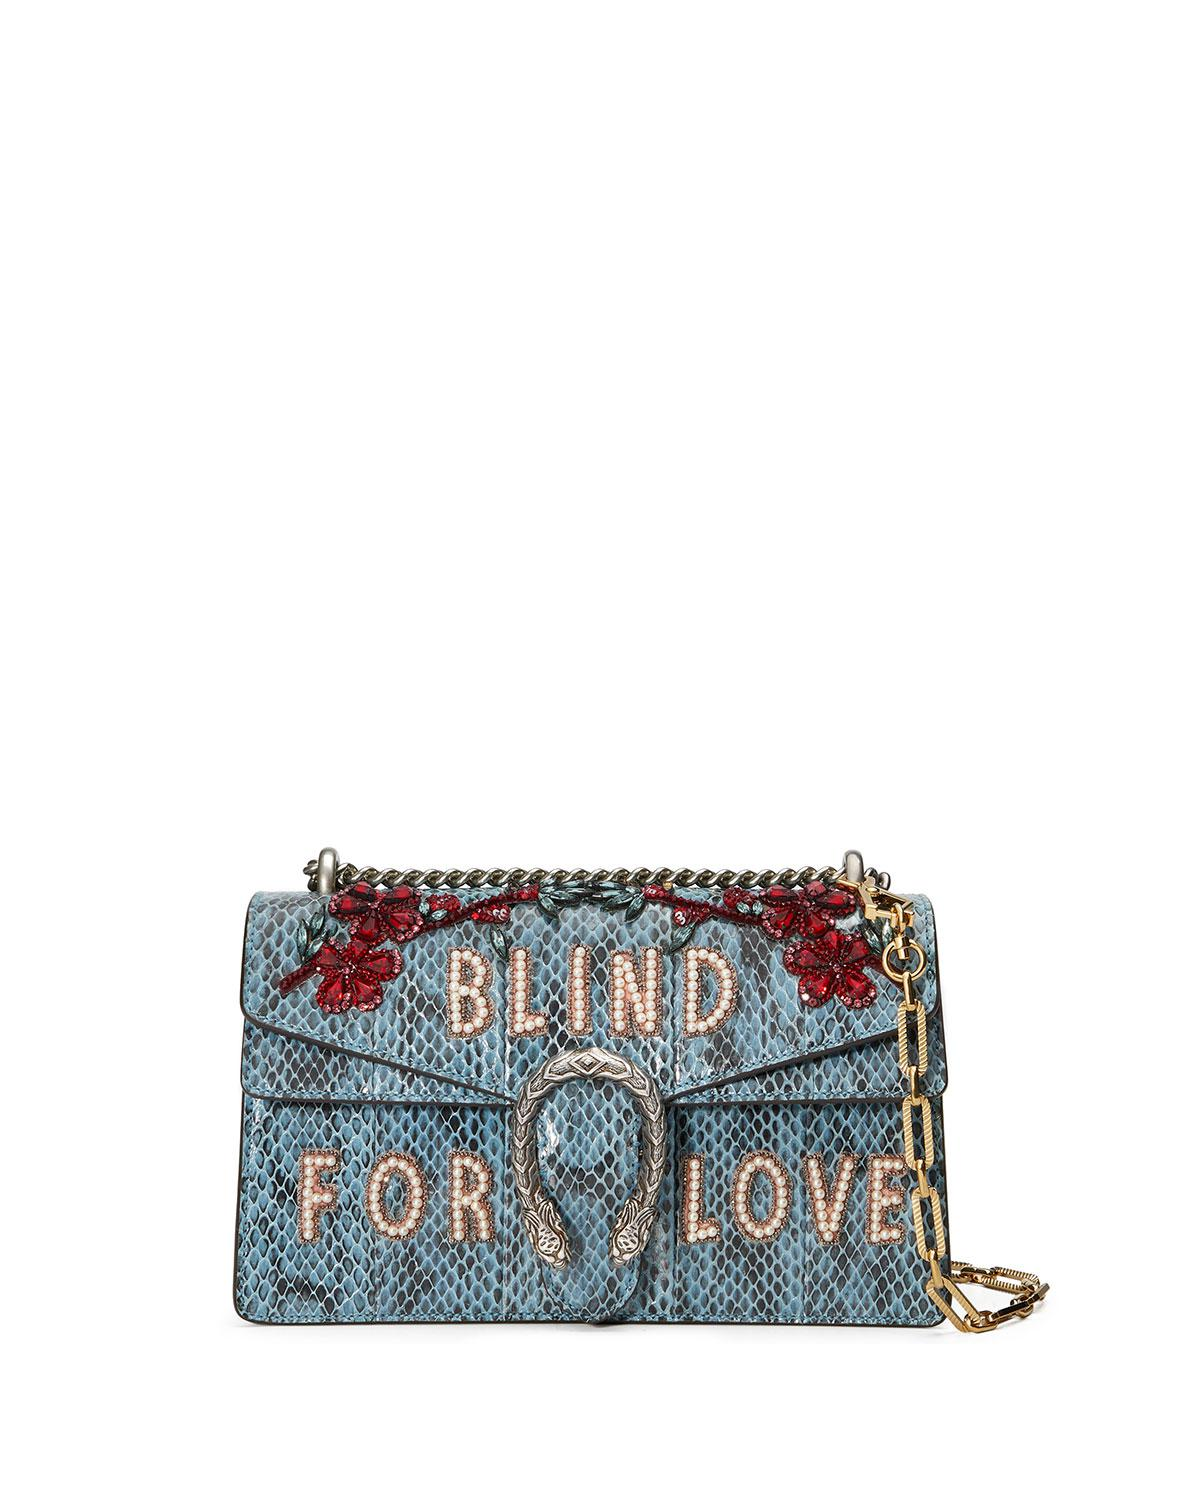 b35a3ce5b10d Gucci Dionysus Small Blind For Love Shoulder Bag in Blue - Lyst